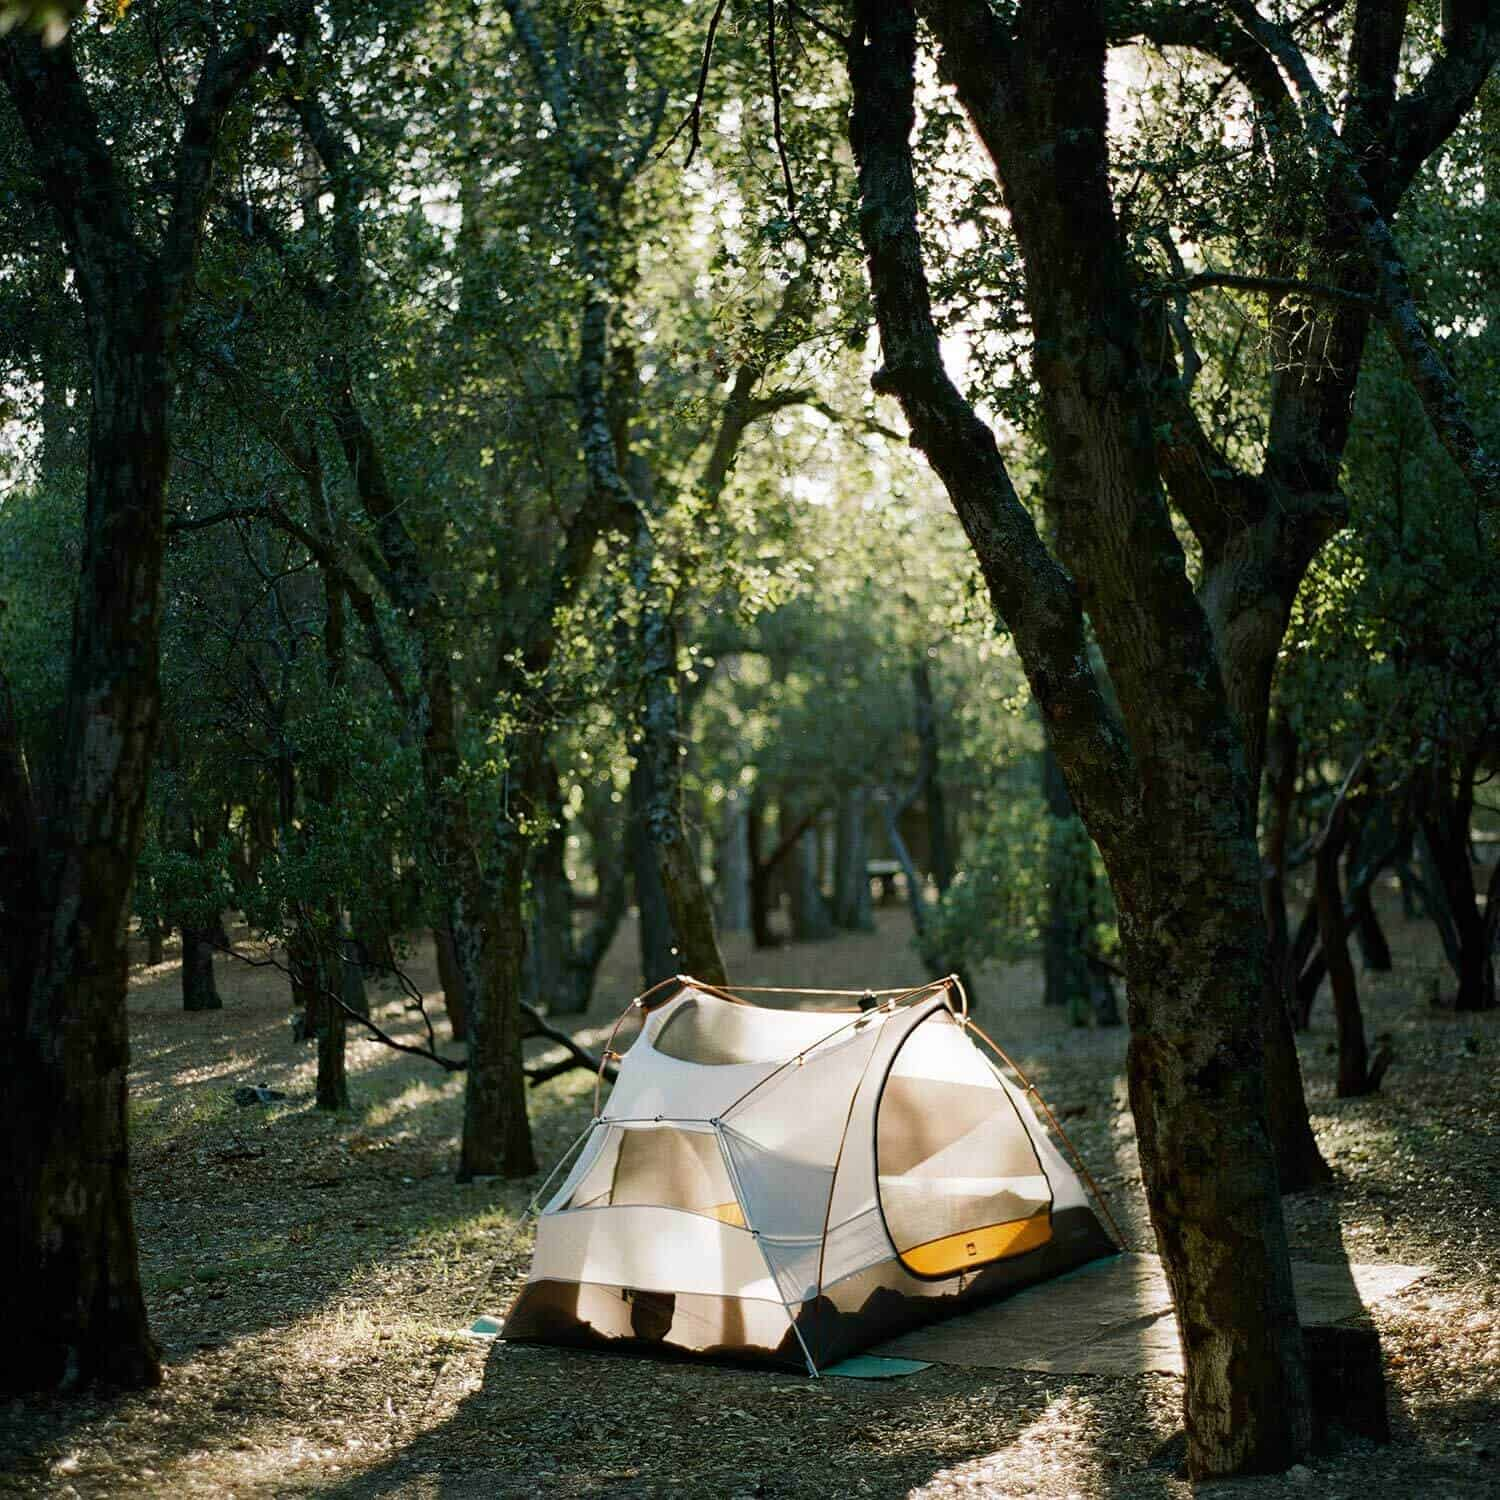 Figueroa Campground